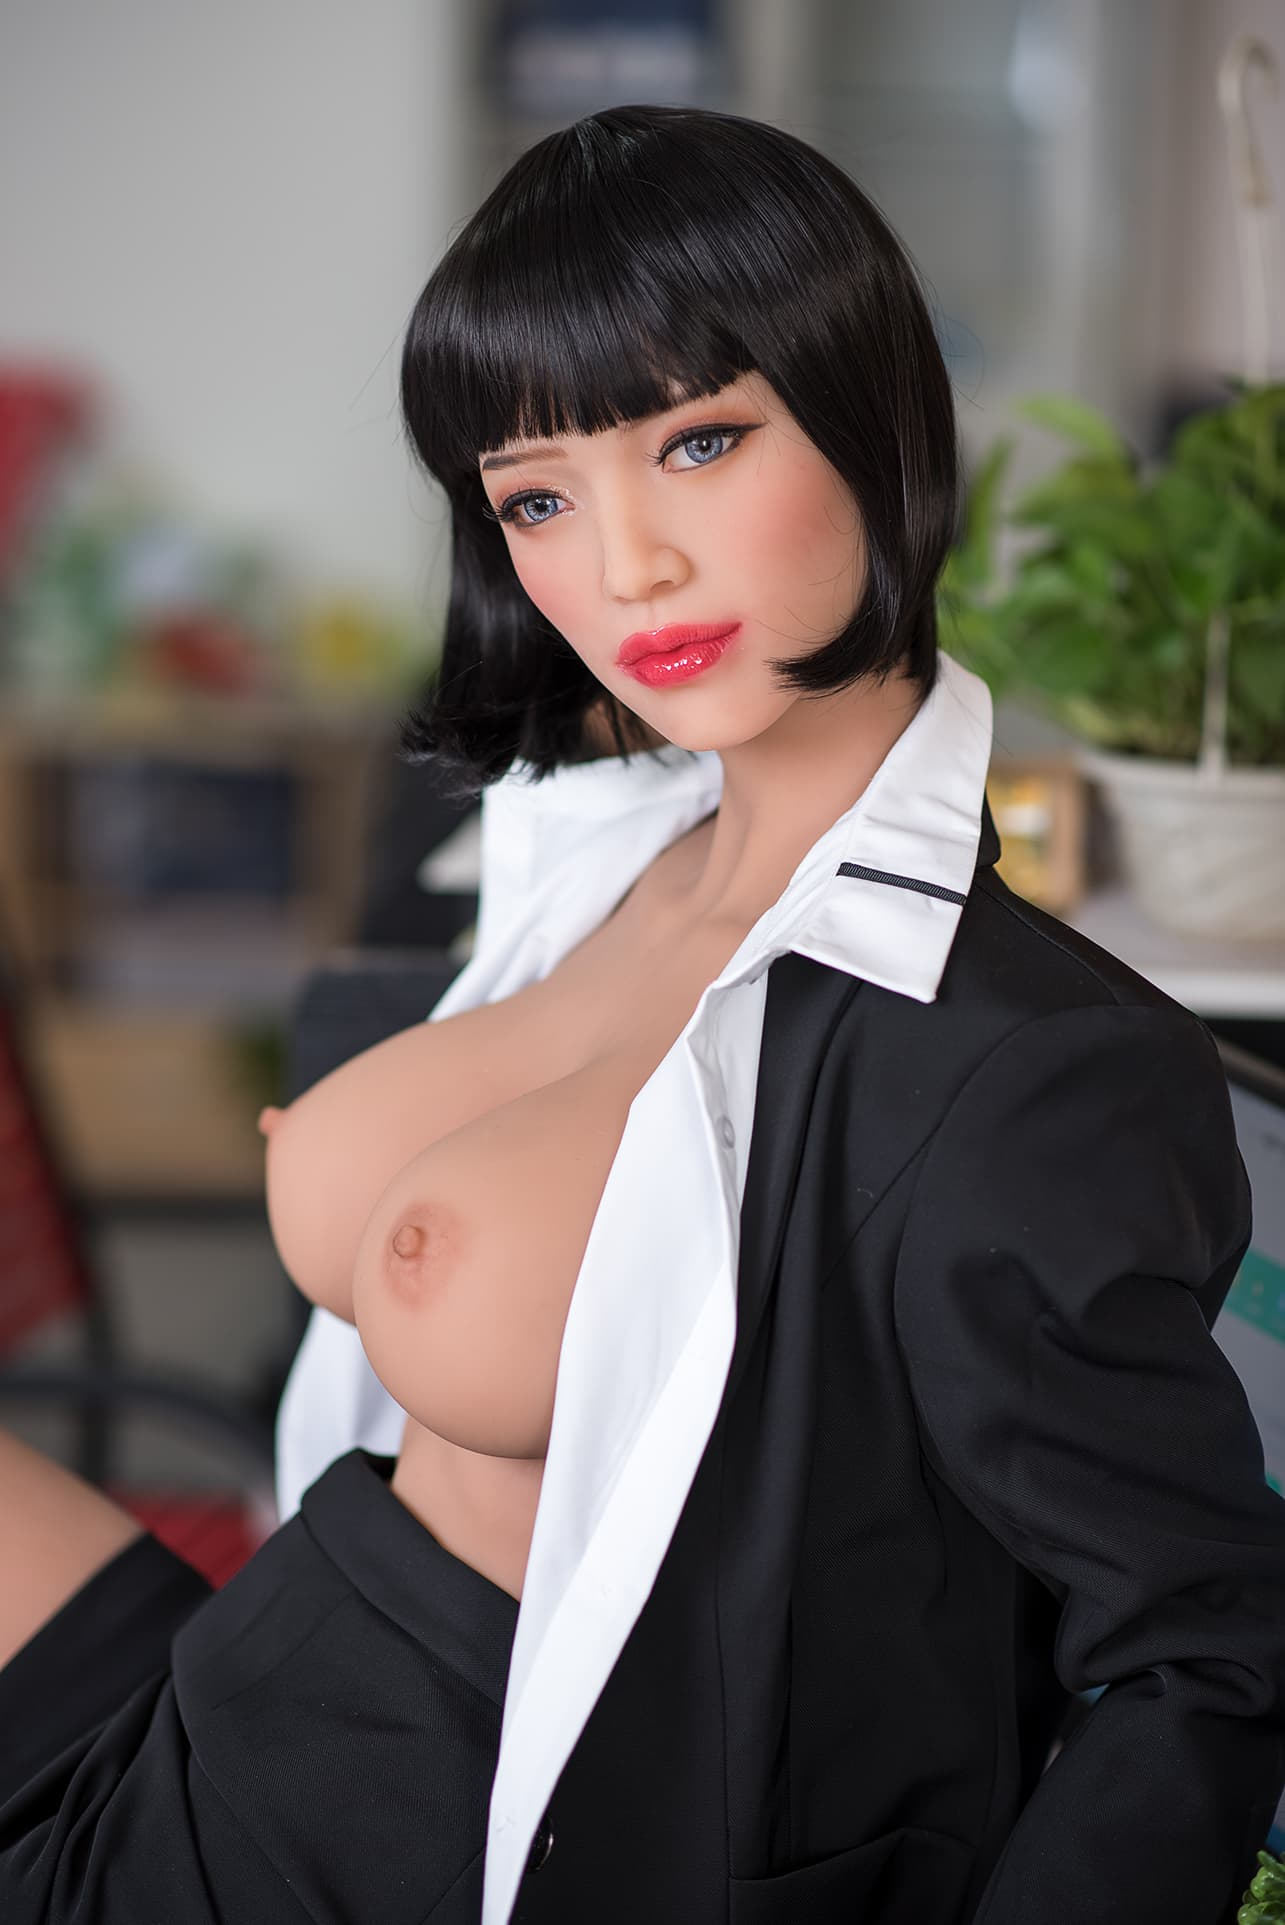 phranc 165cm black hair big boobs athletic tpe sex doll(4)